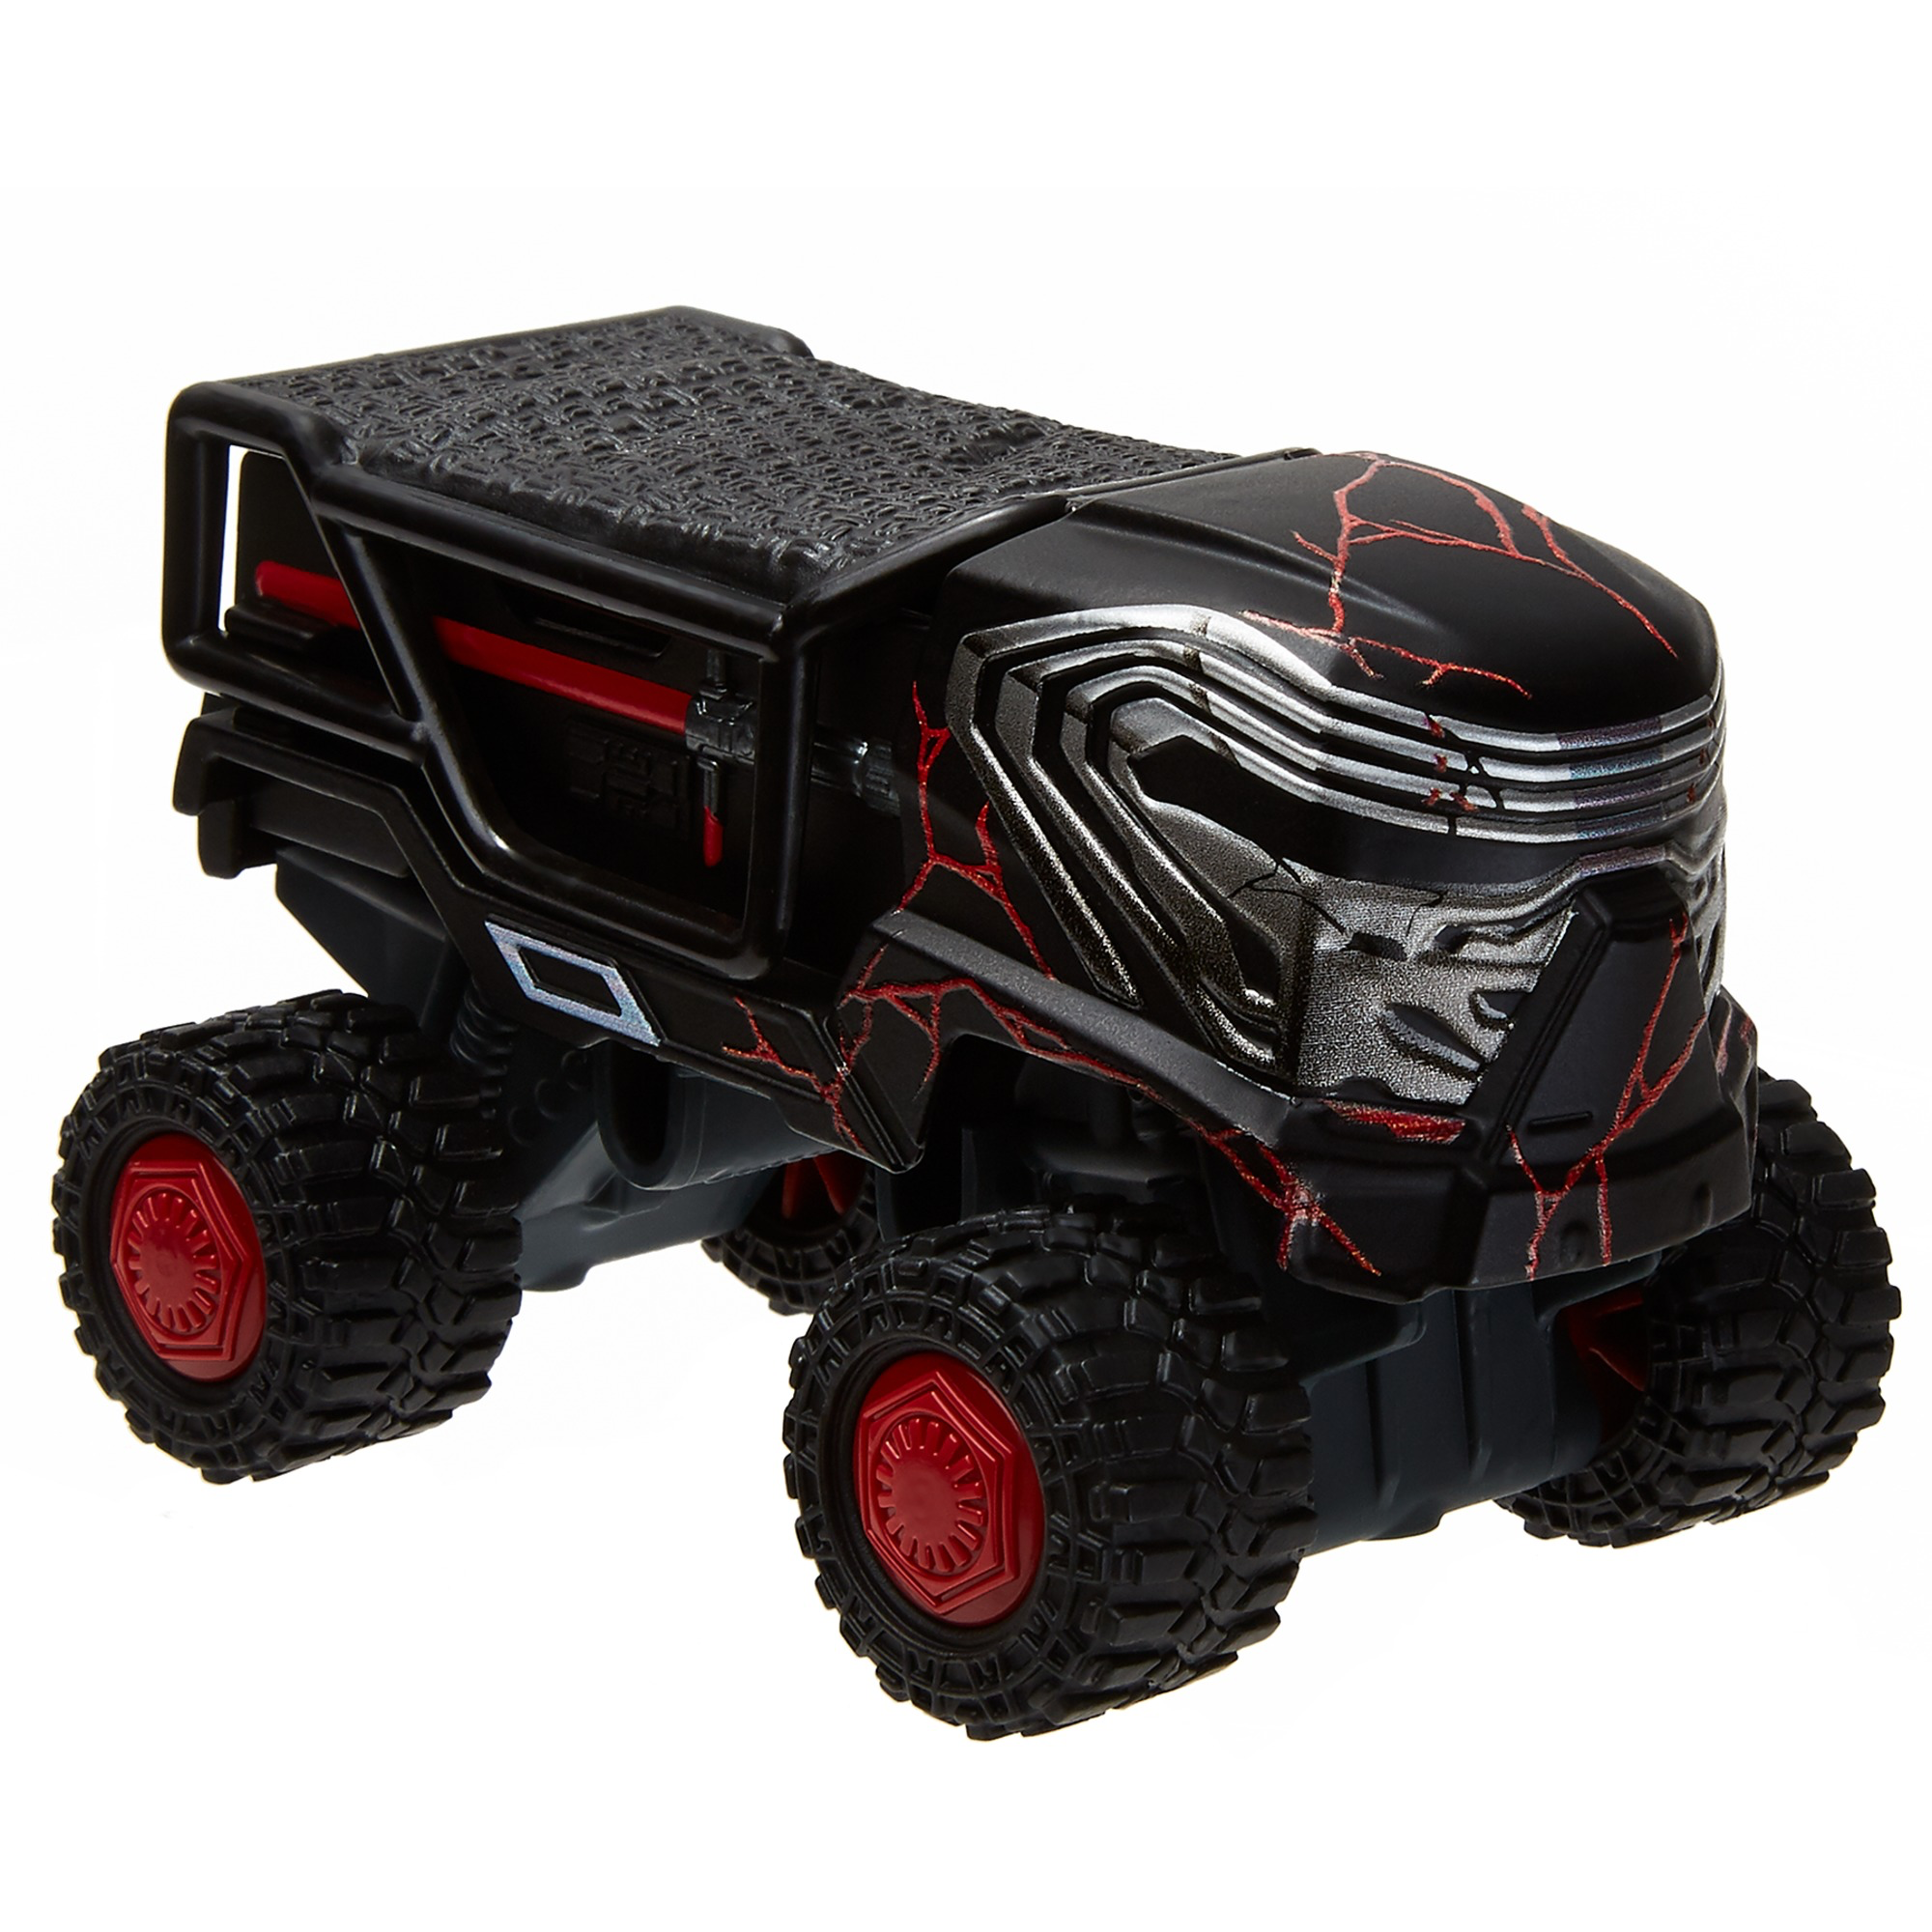 TROS HW SL Kylo Ren AT Character Car Toy 2